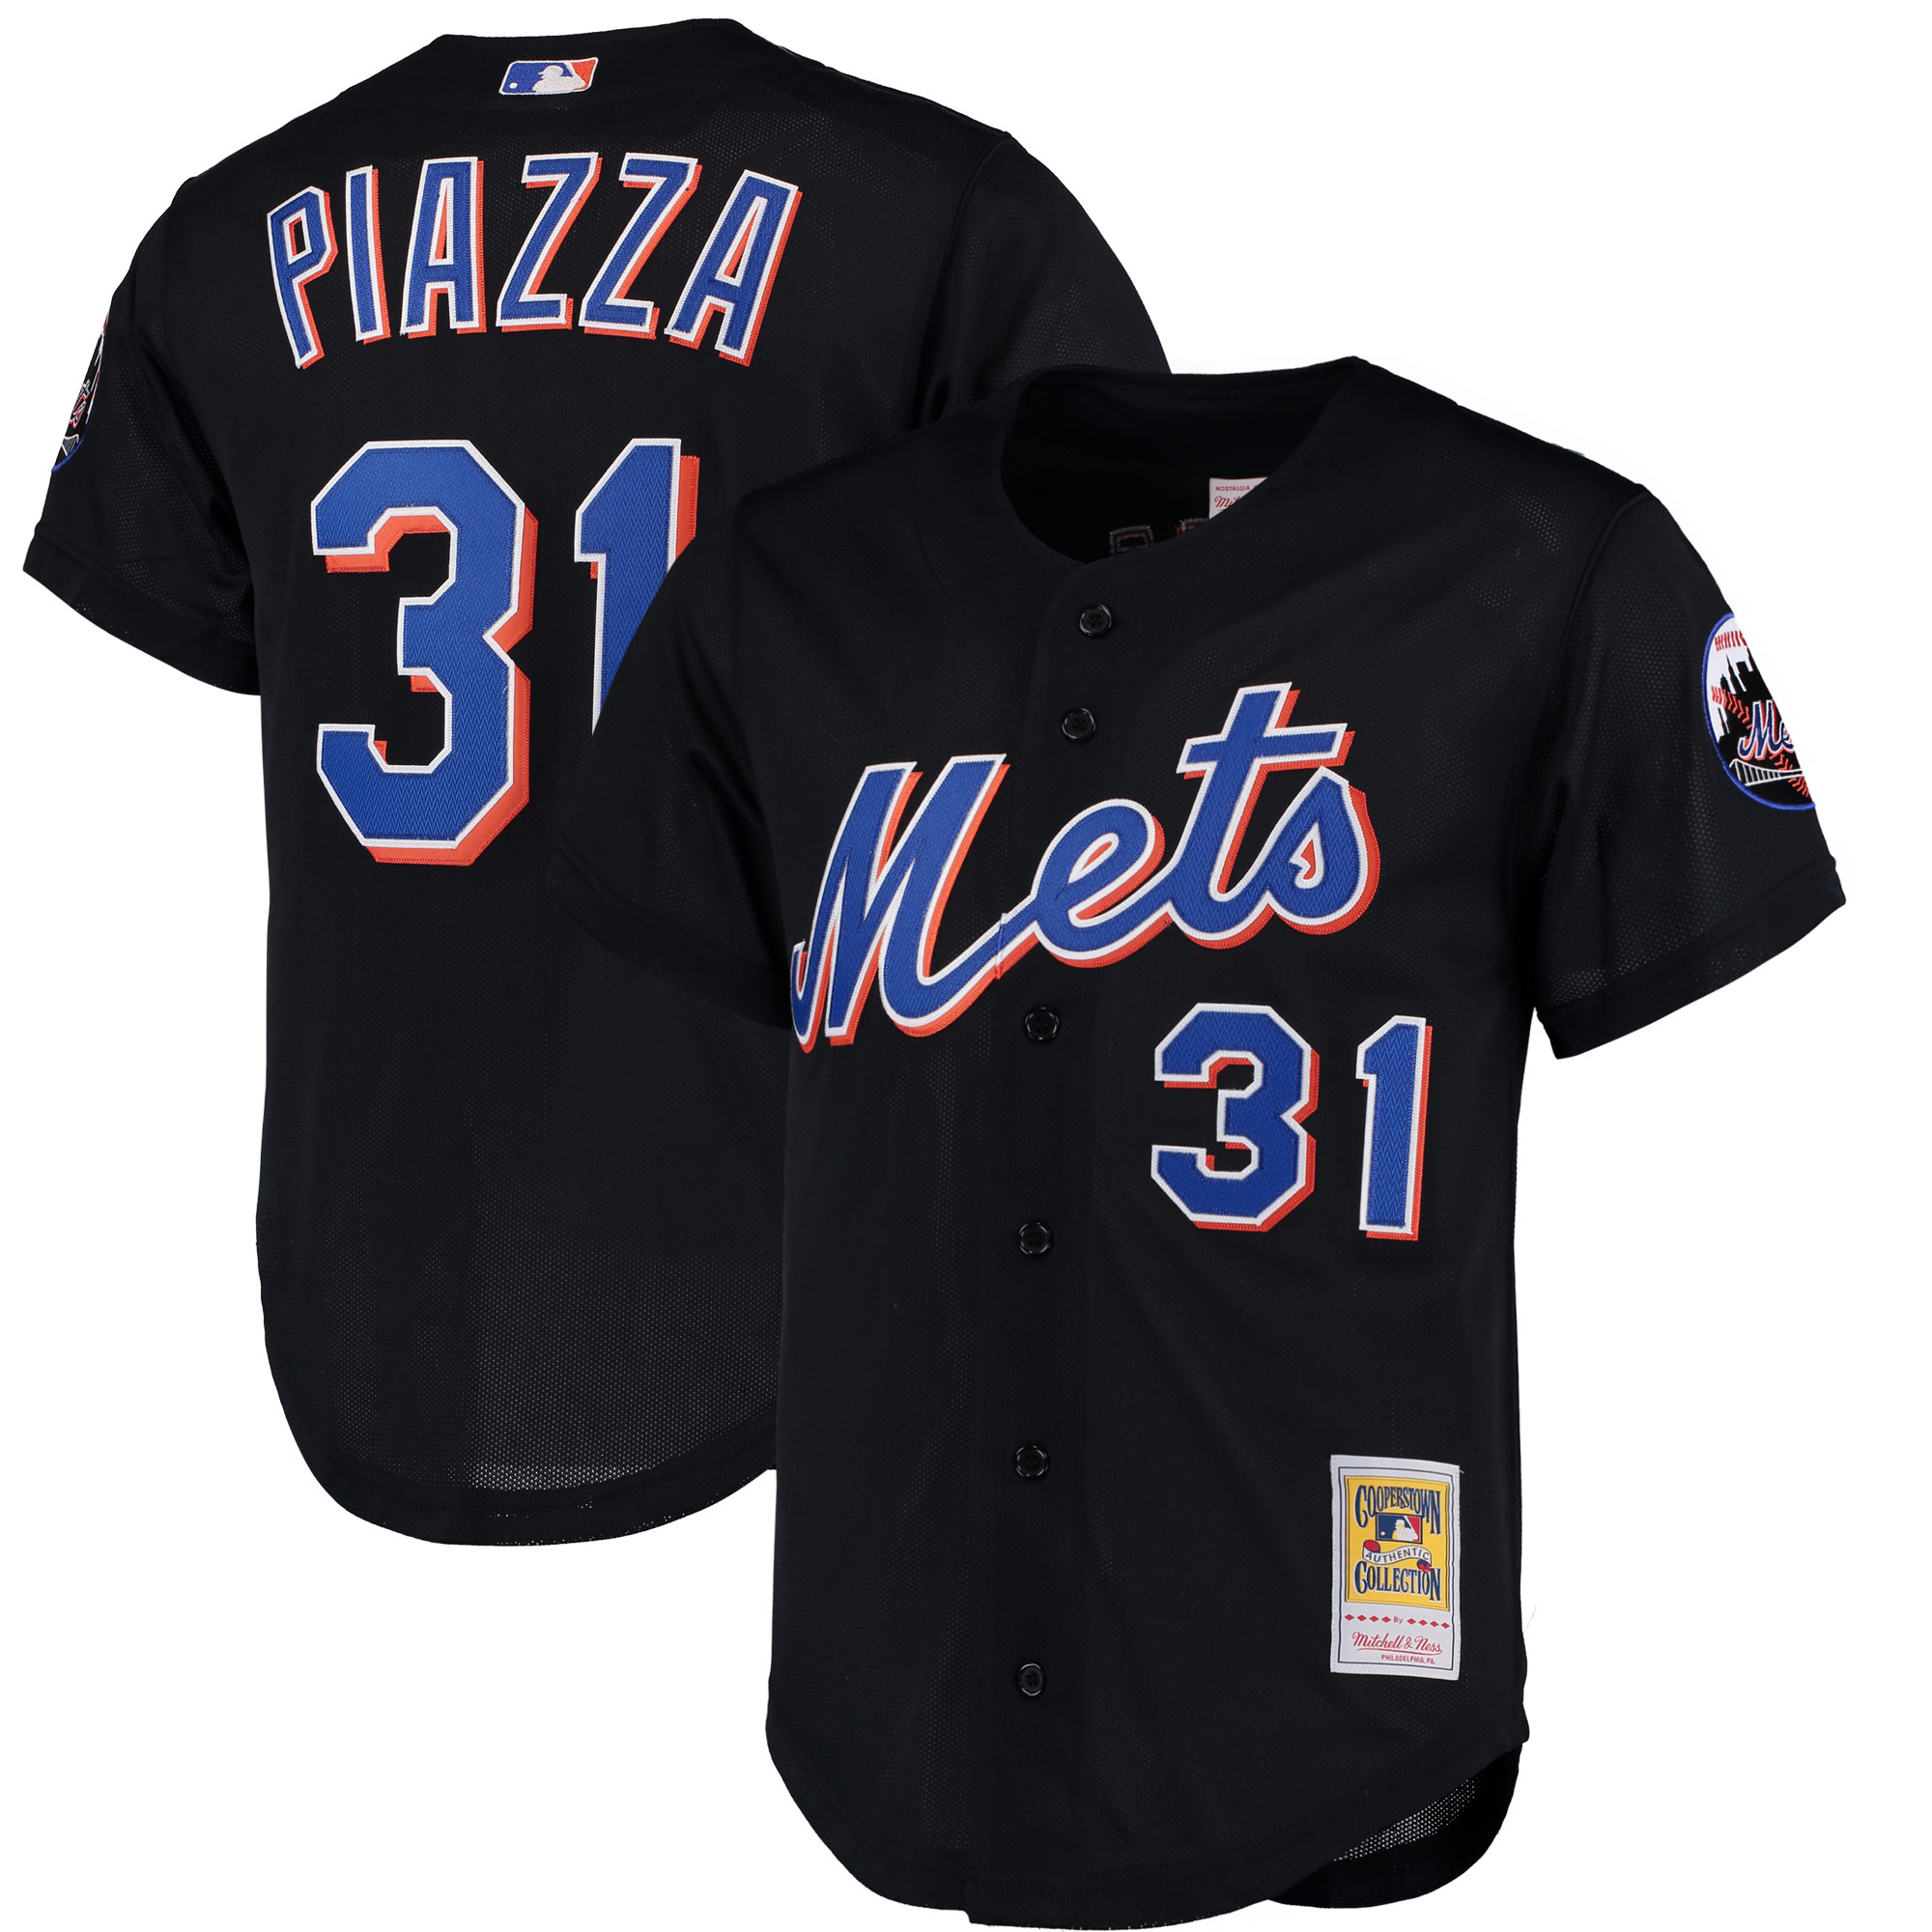 Mike Piazza New York Mets Mitchell & Ness Cooperstown Collection Mesh Batting Practice Jersey - Black